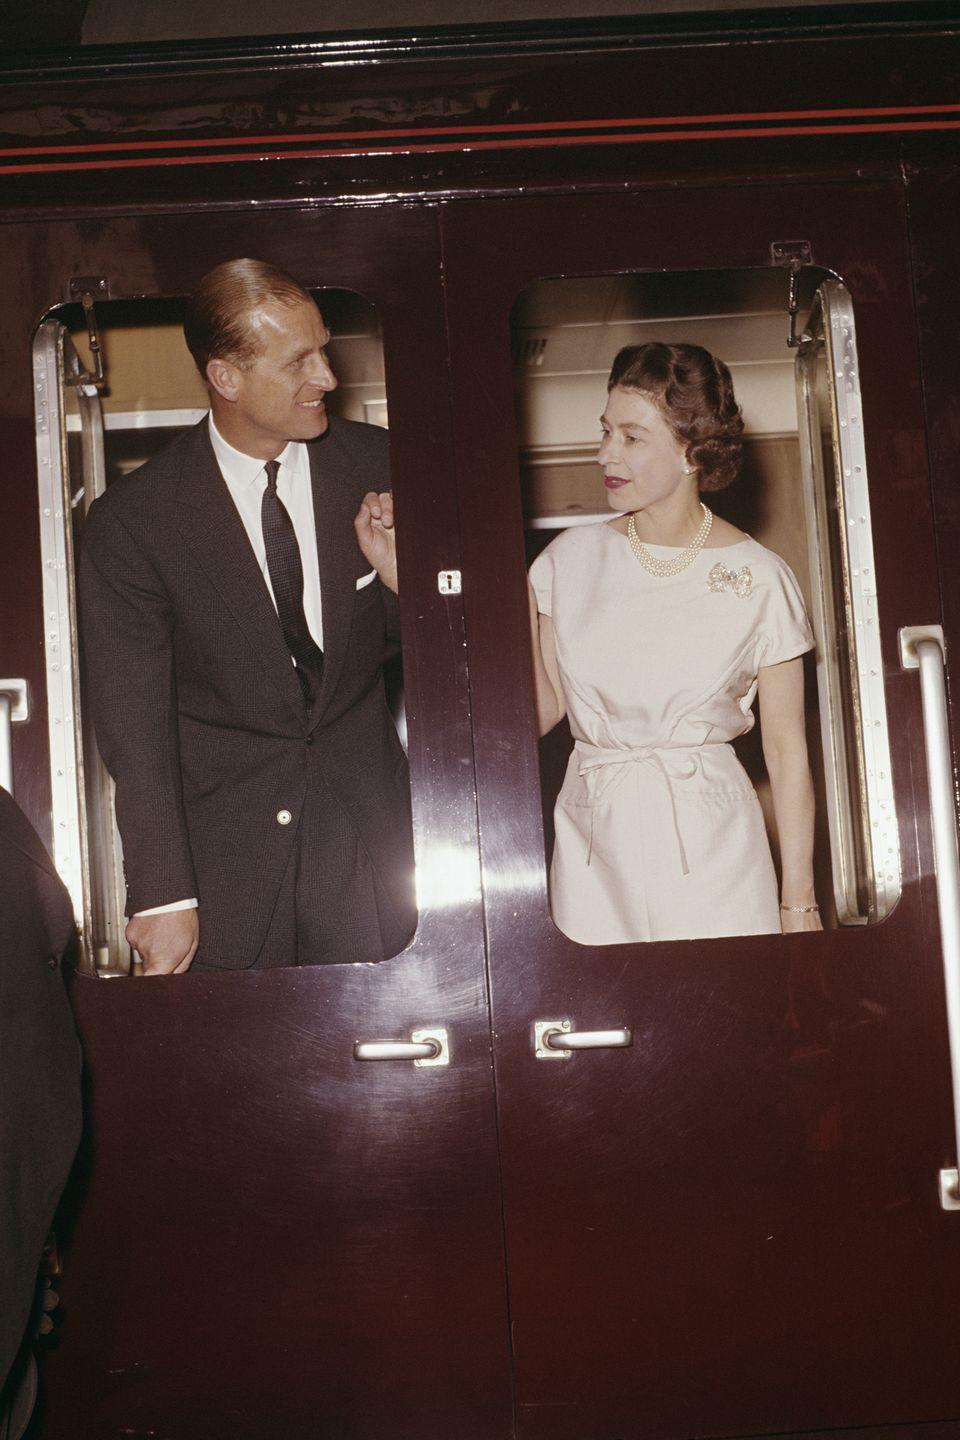 <p>Prince Philip and Queen Elizabeth together on a train they were departing in Manchester during the spring 0f 1961. </p>